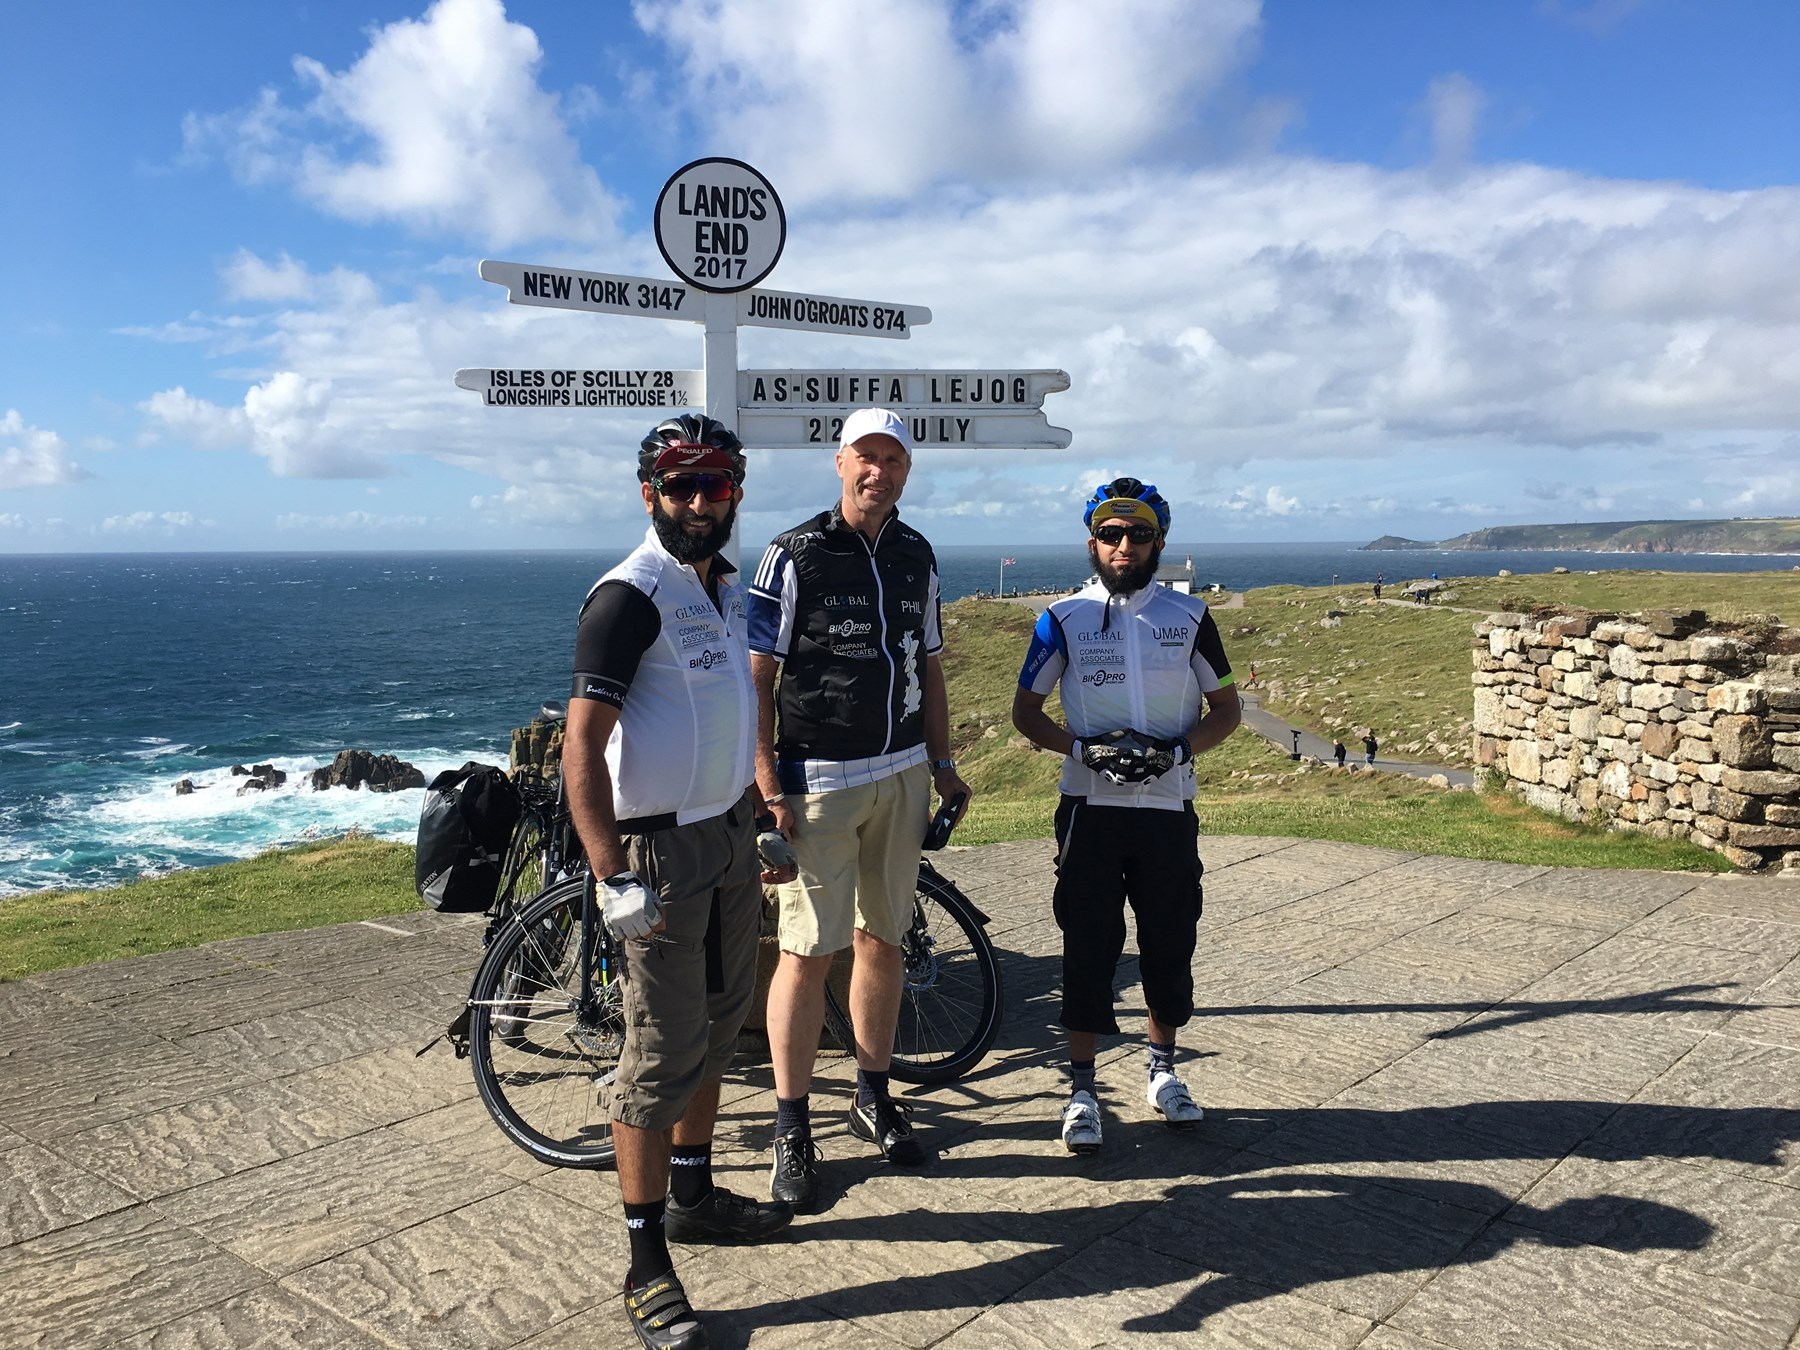 Mahroof Malik at Land's End with friends